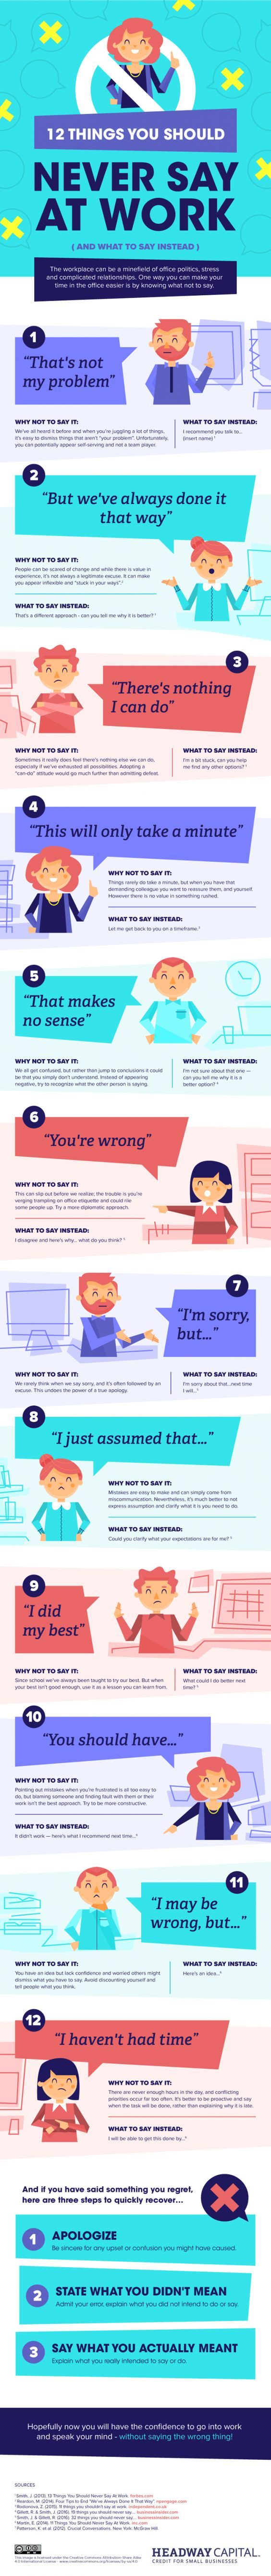 Original article of by Kirstin Fawcett, January 30, 2017  Source: http://mentalfloss.com/article/91667/12-phrases-you-should-never-say-work